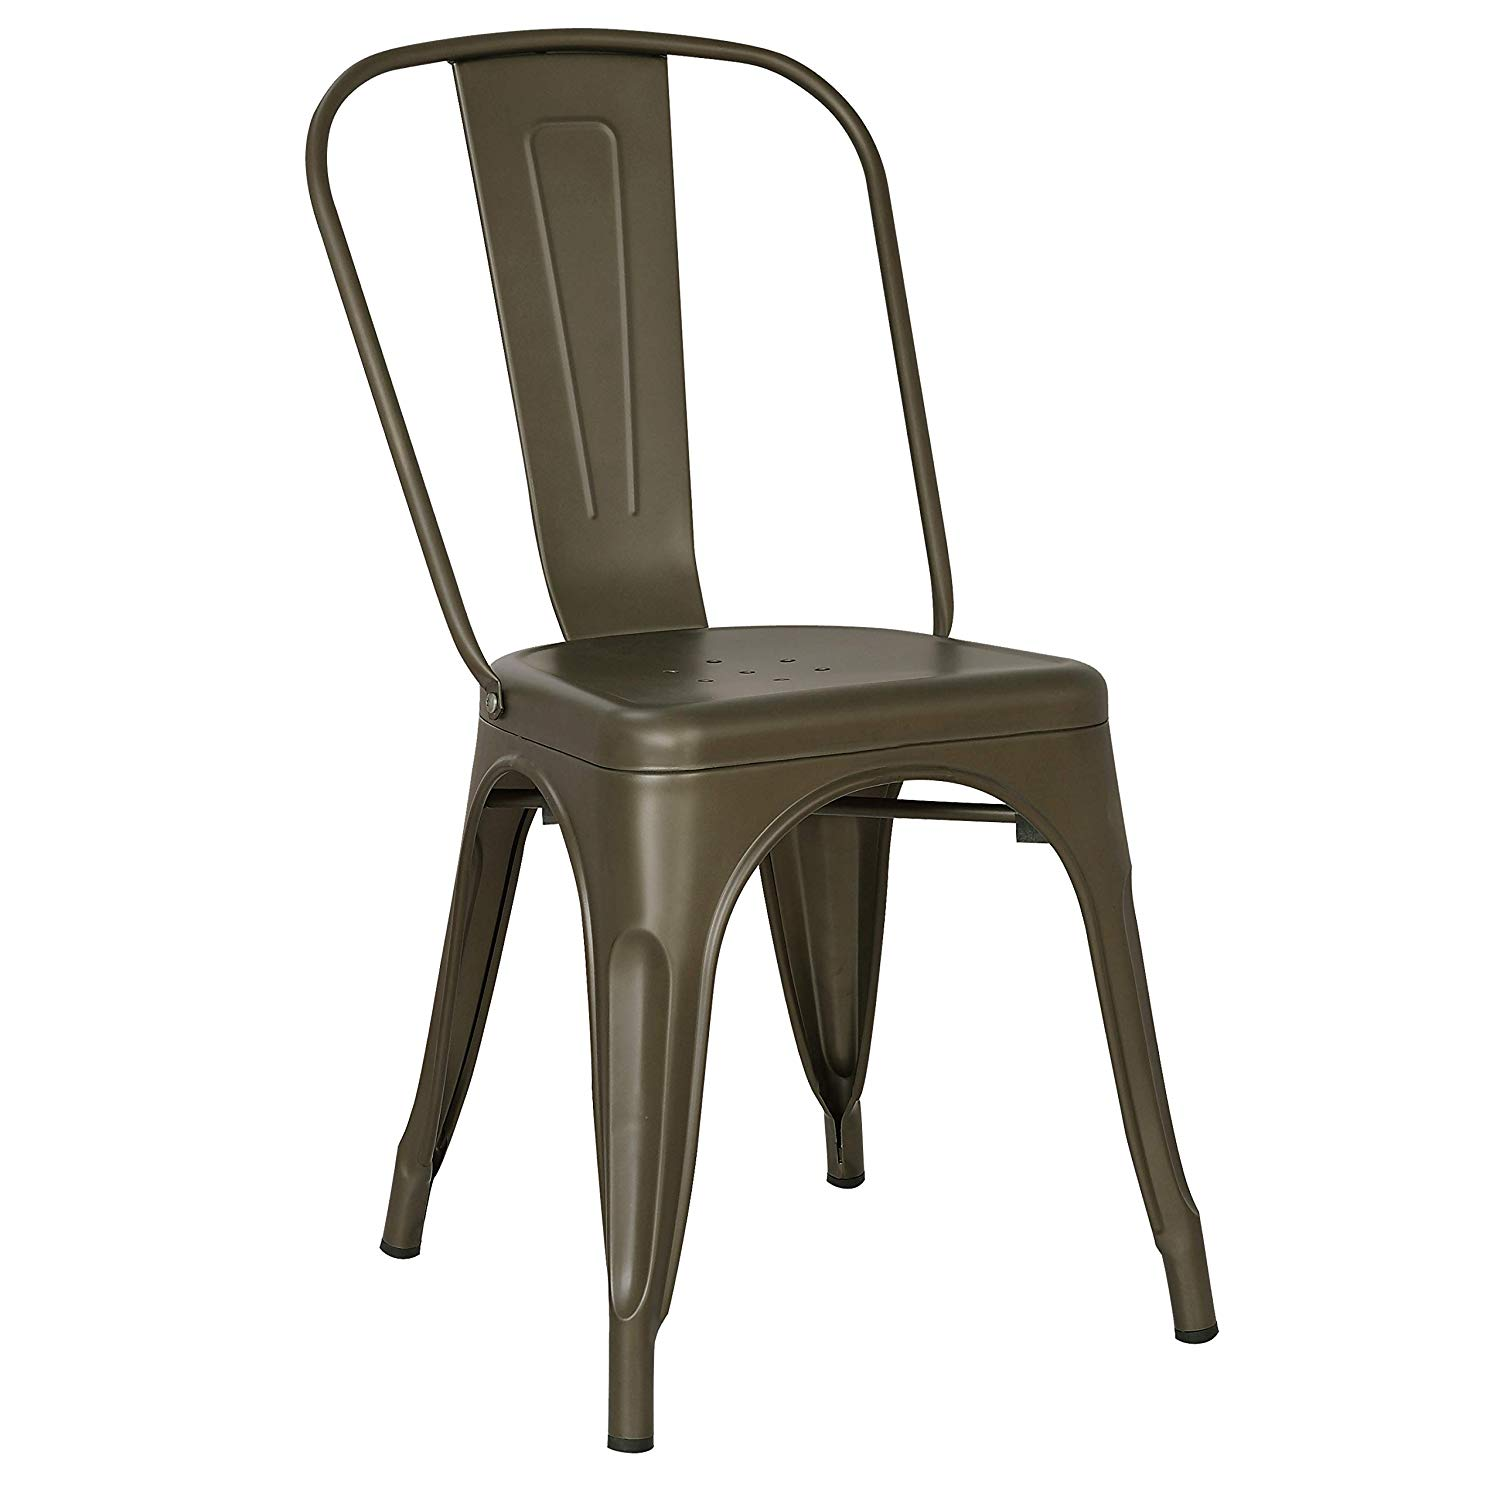 Chair (similar)